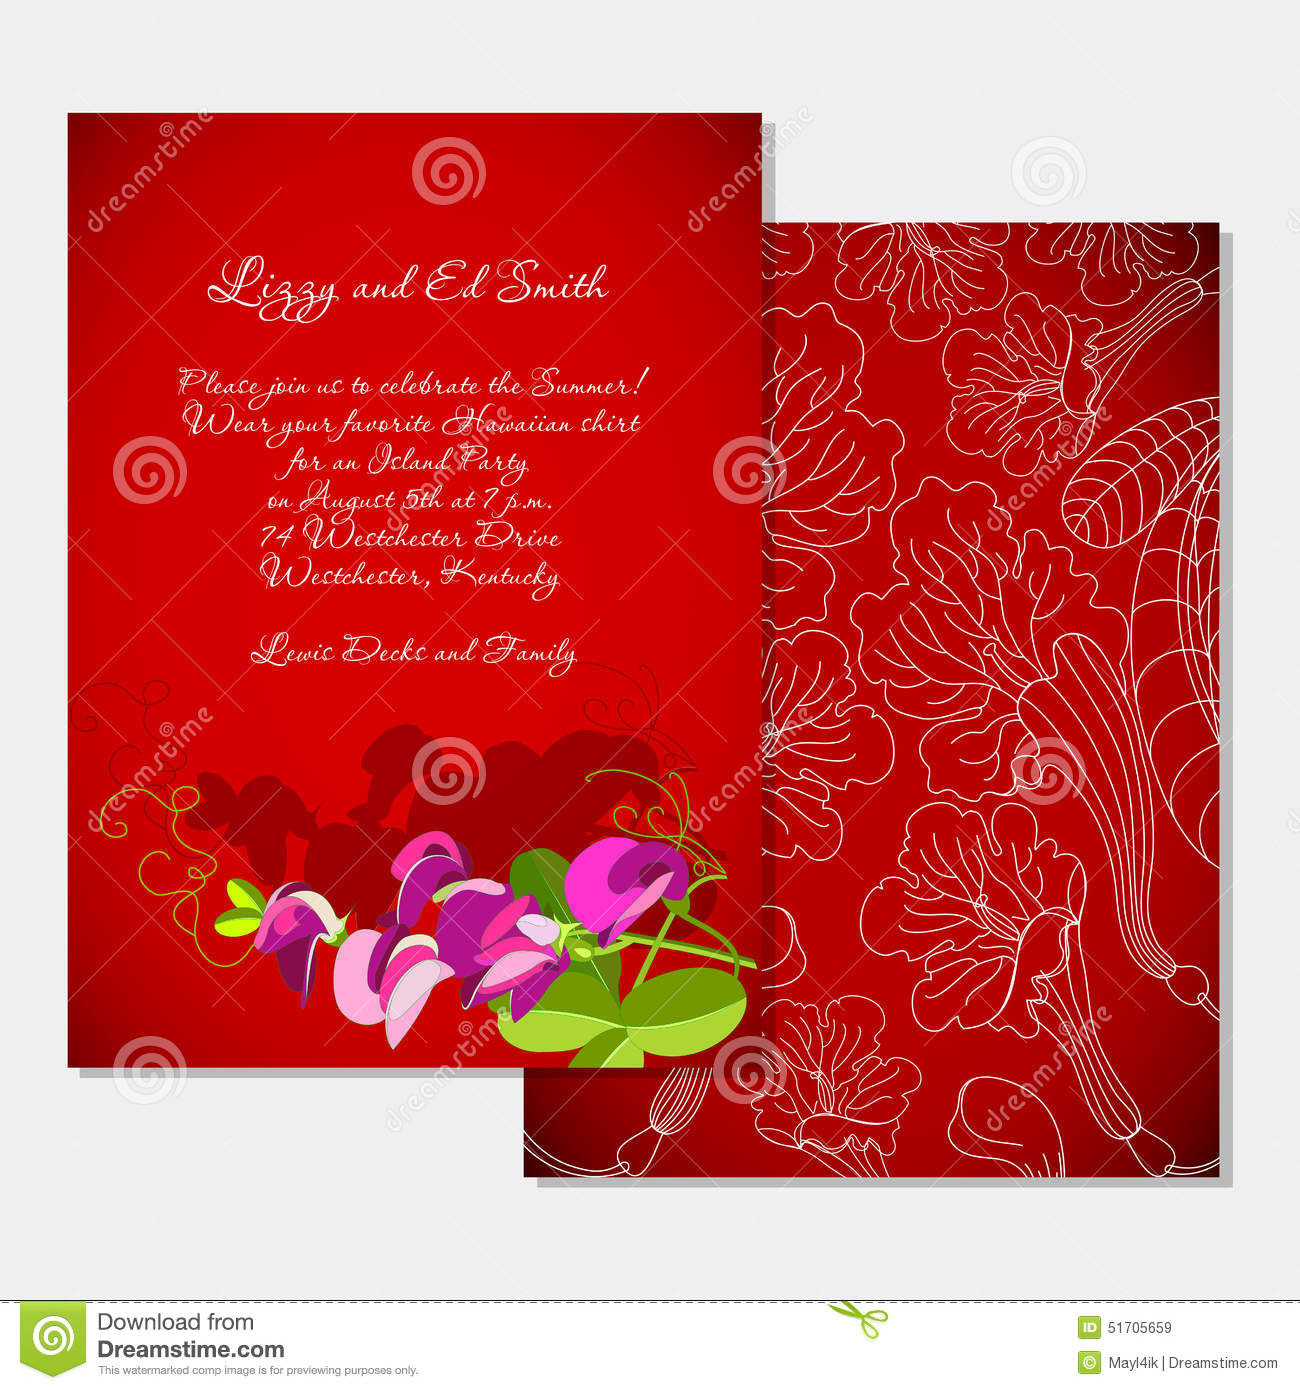 Invitation Template On Tropical Party Stock Vector - Illustration of ...